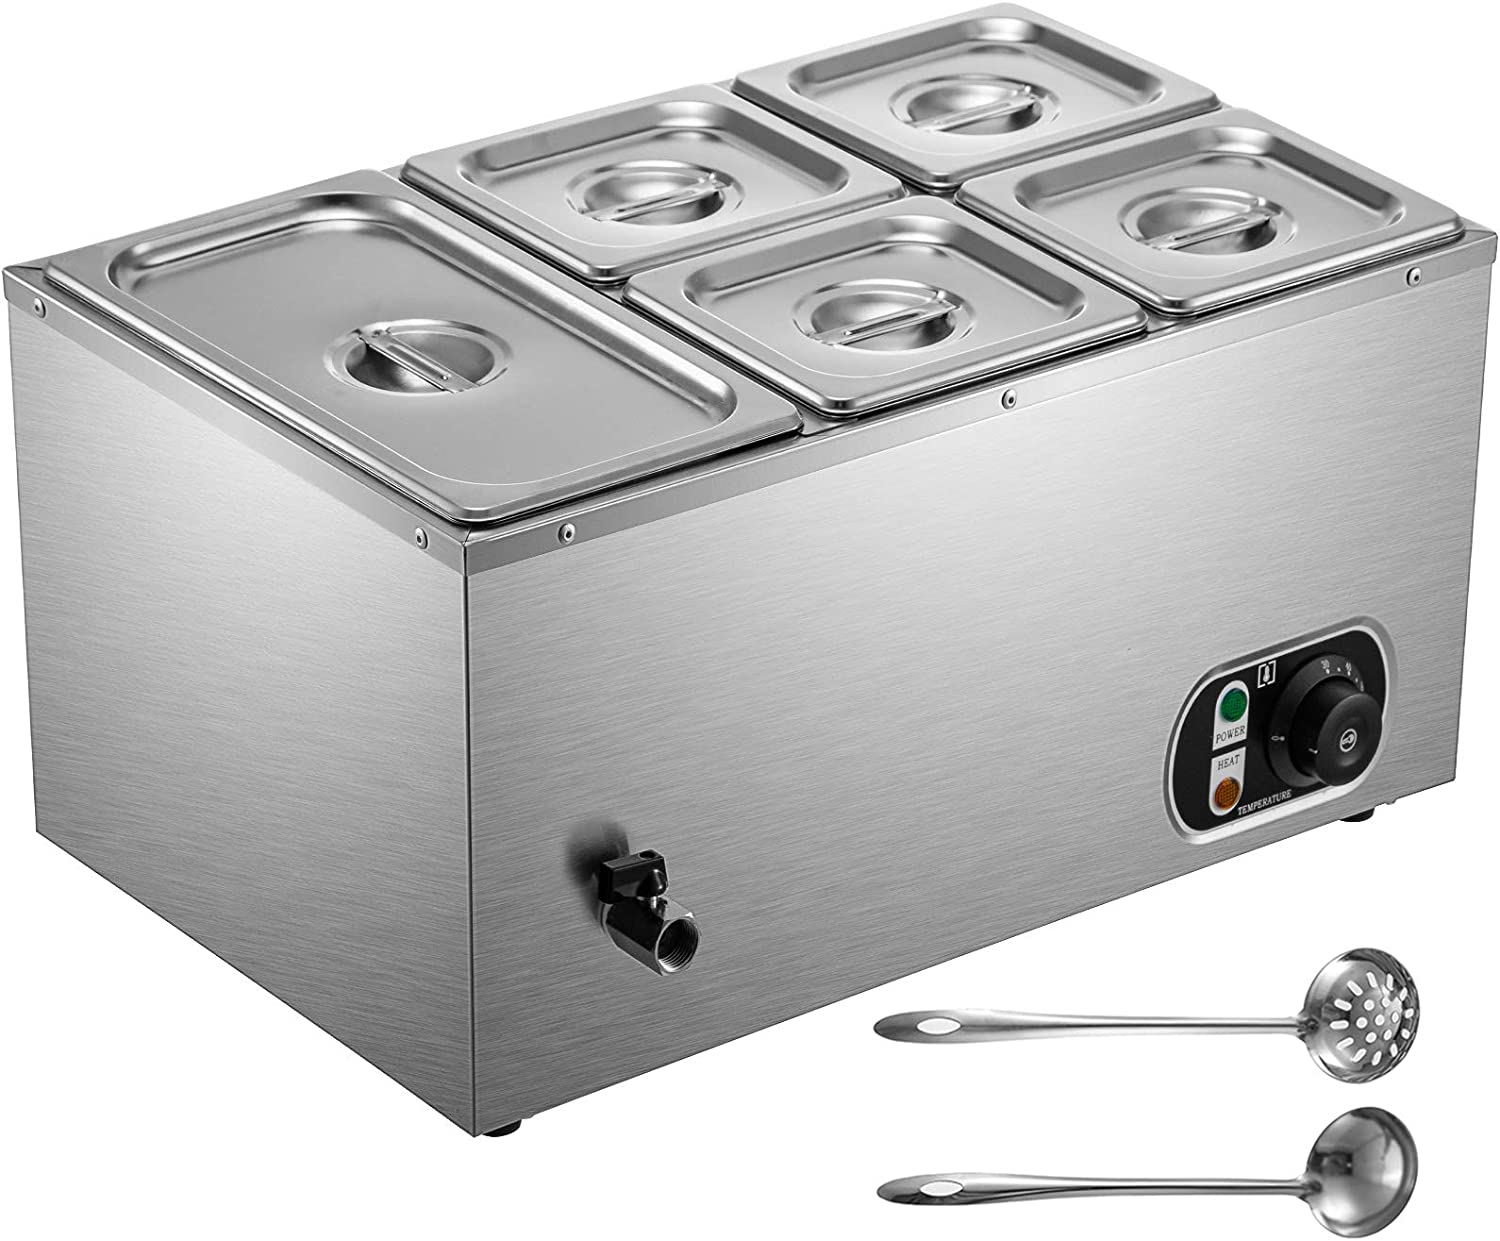 VEVOR 110V Commercial Food Warmer 1x1/3GN and 4x1/6GN, 5-Pan Stainless Steel Bain Marie 24 Quart Capacity,1500W Steam Table 15cm/6inch Deep, Electric Food Warmer with Lid for Catering Restaurants